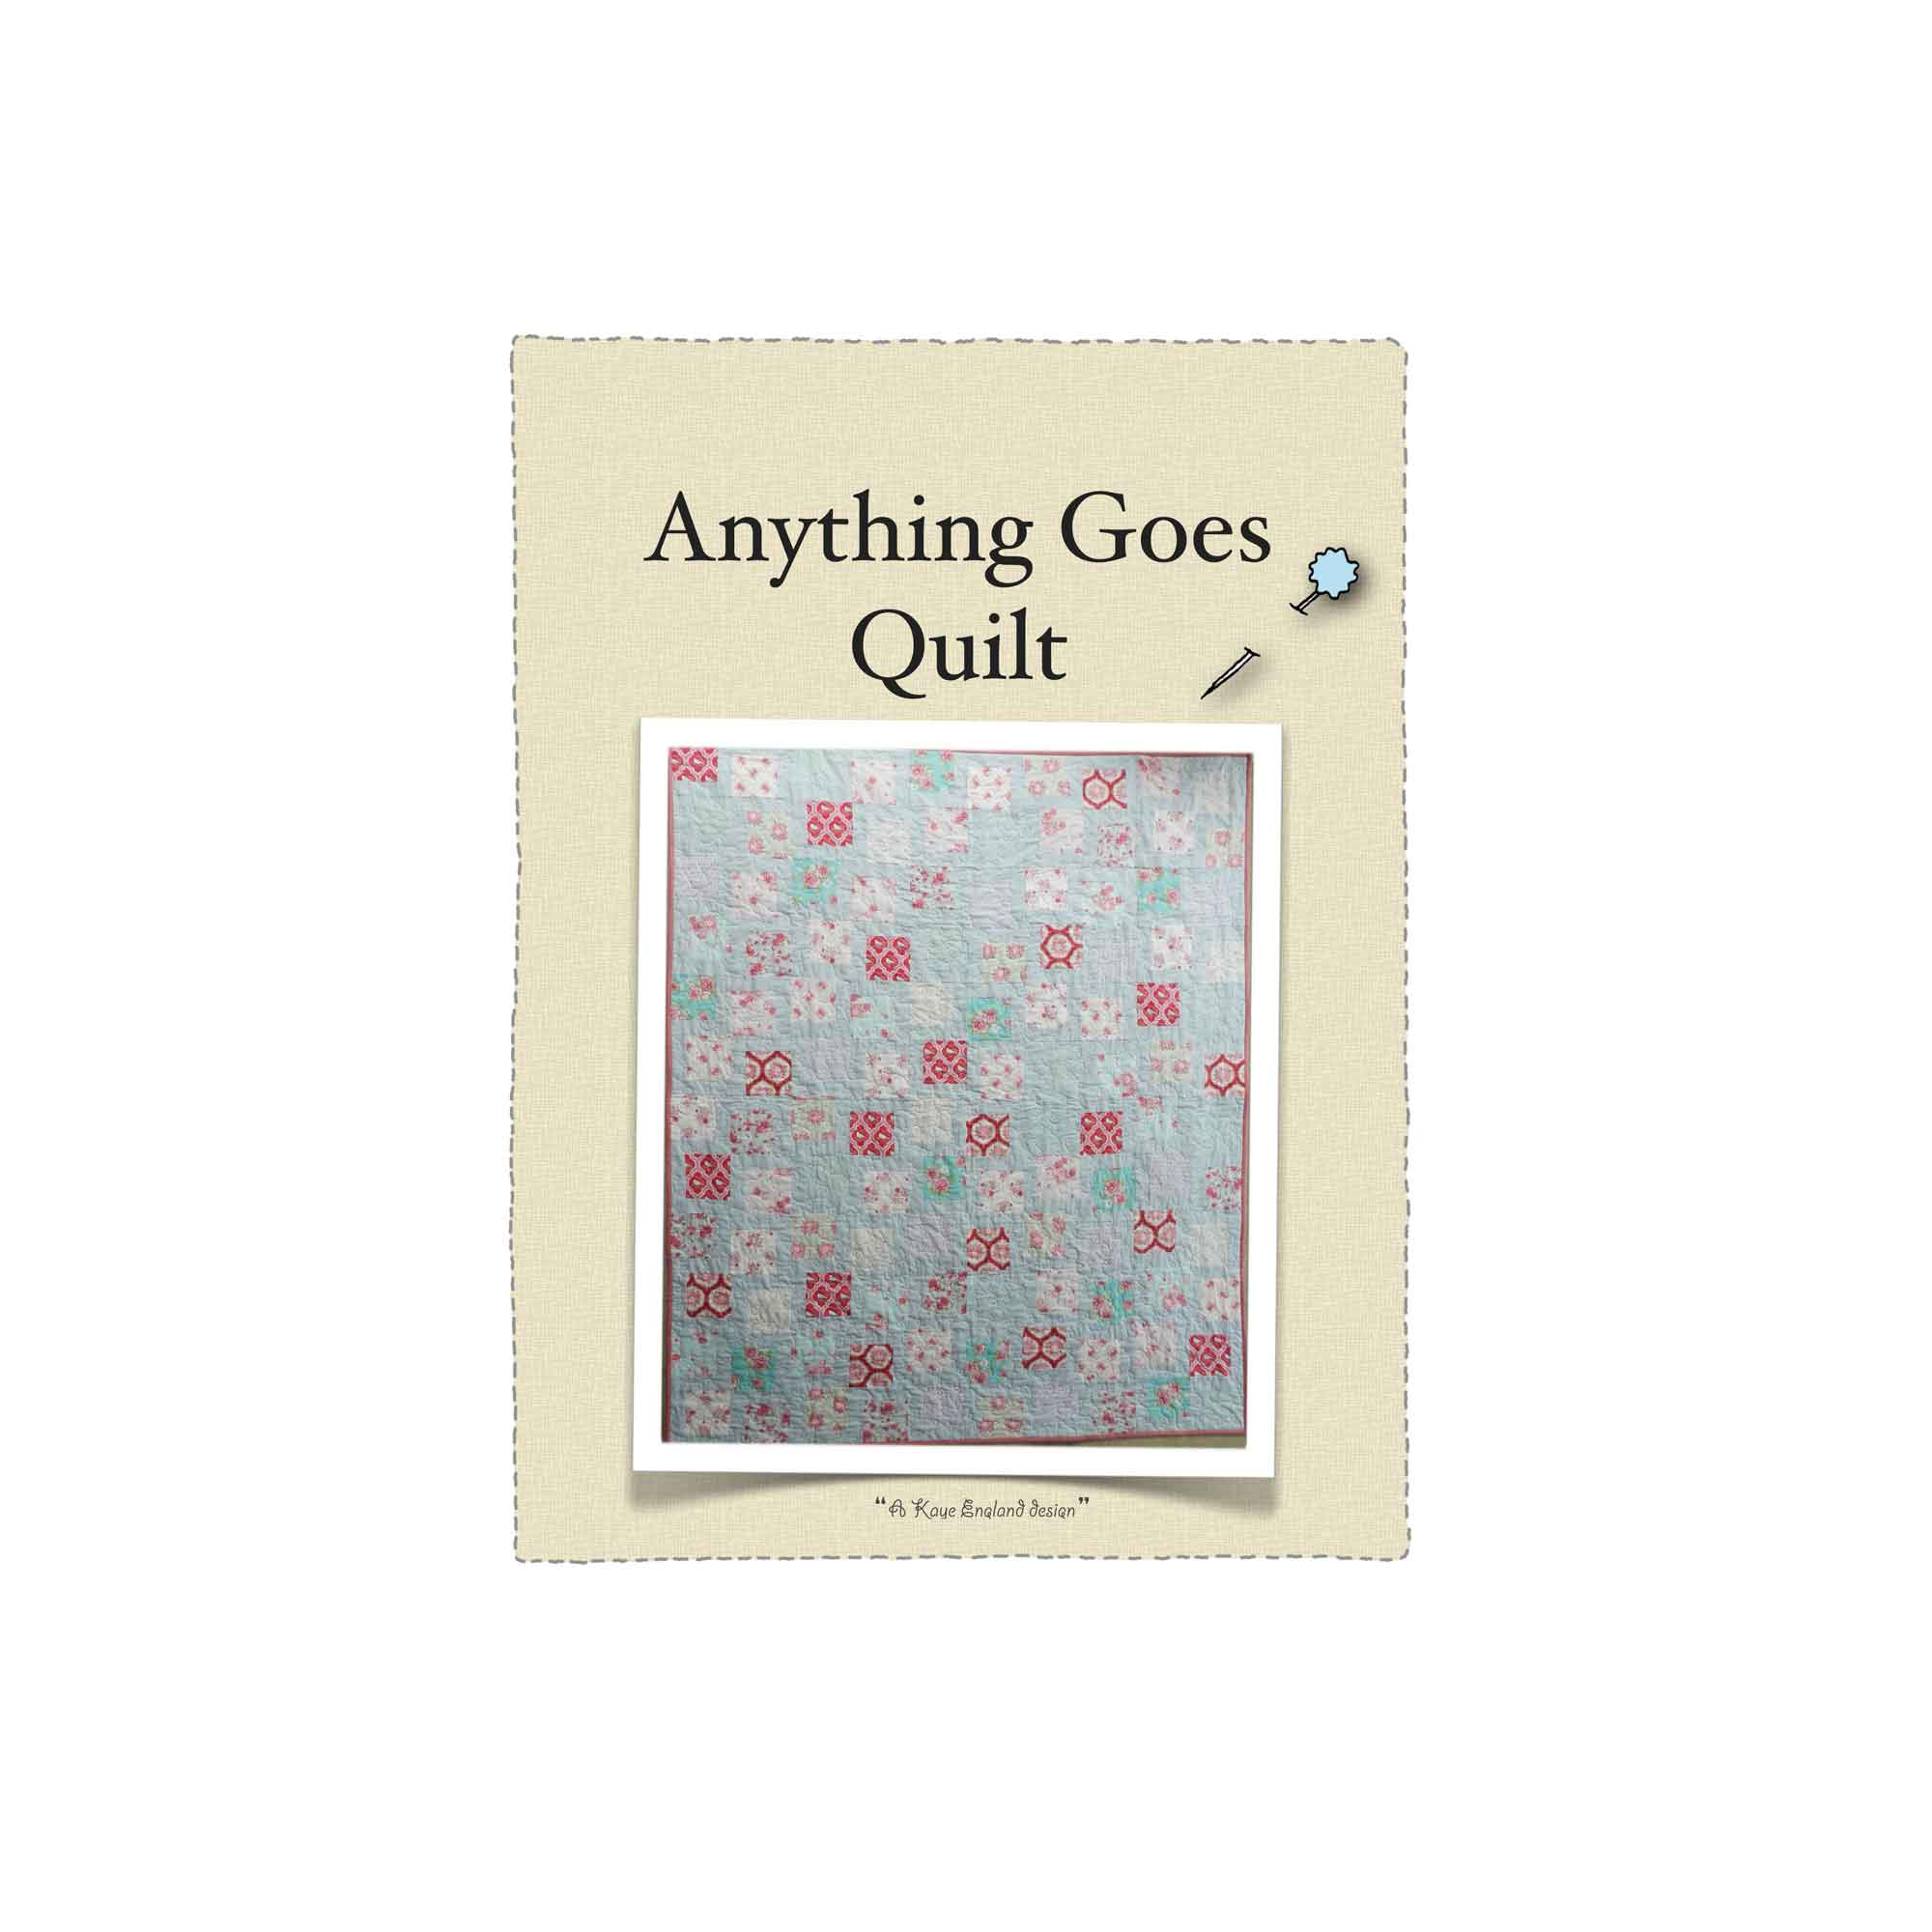 The  Anything Goes Quilt  pattern is available in our online store.